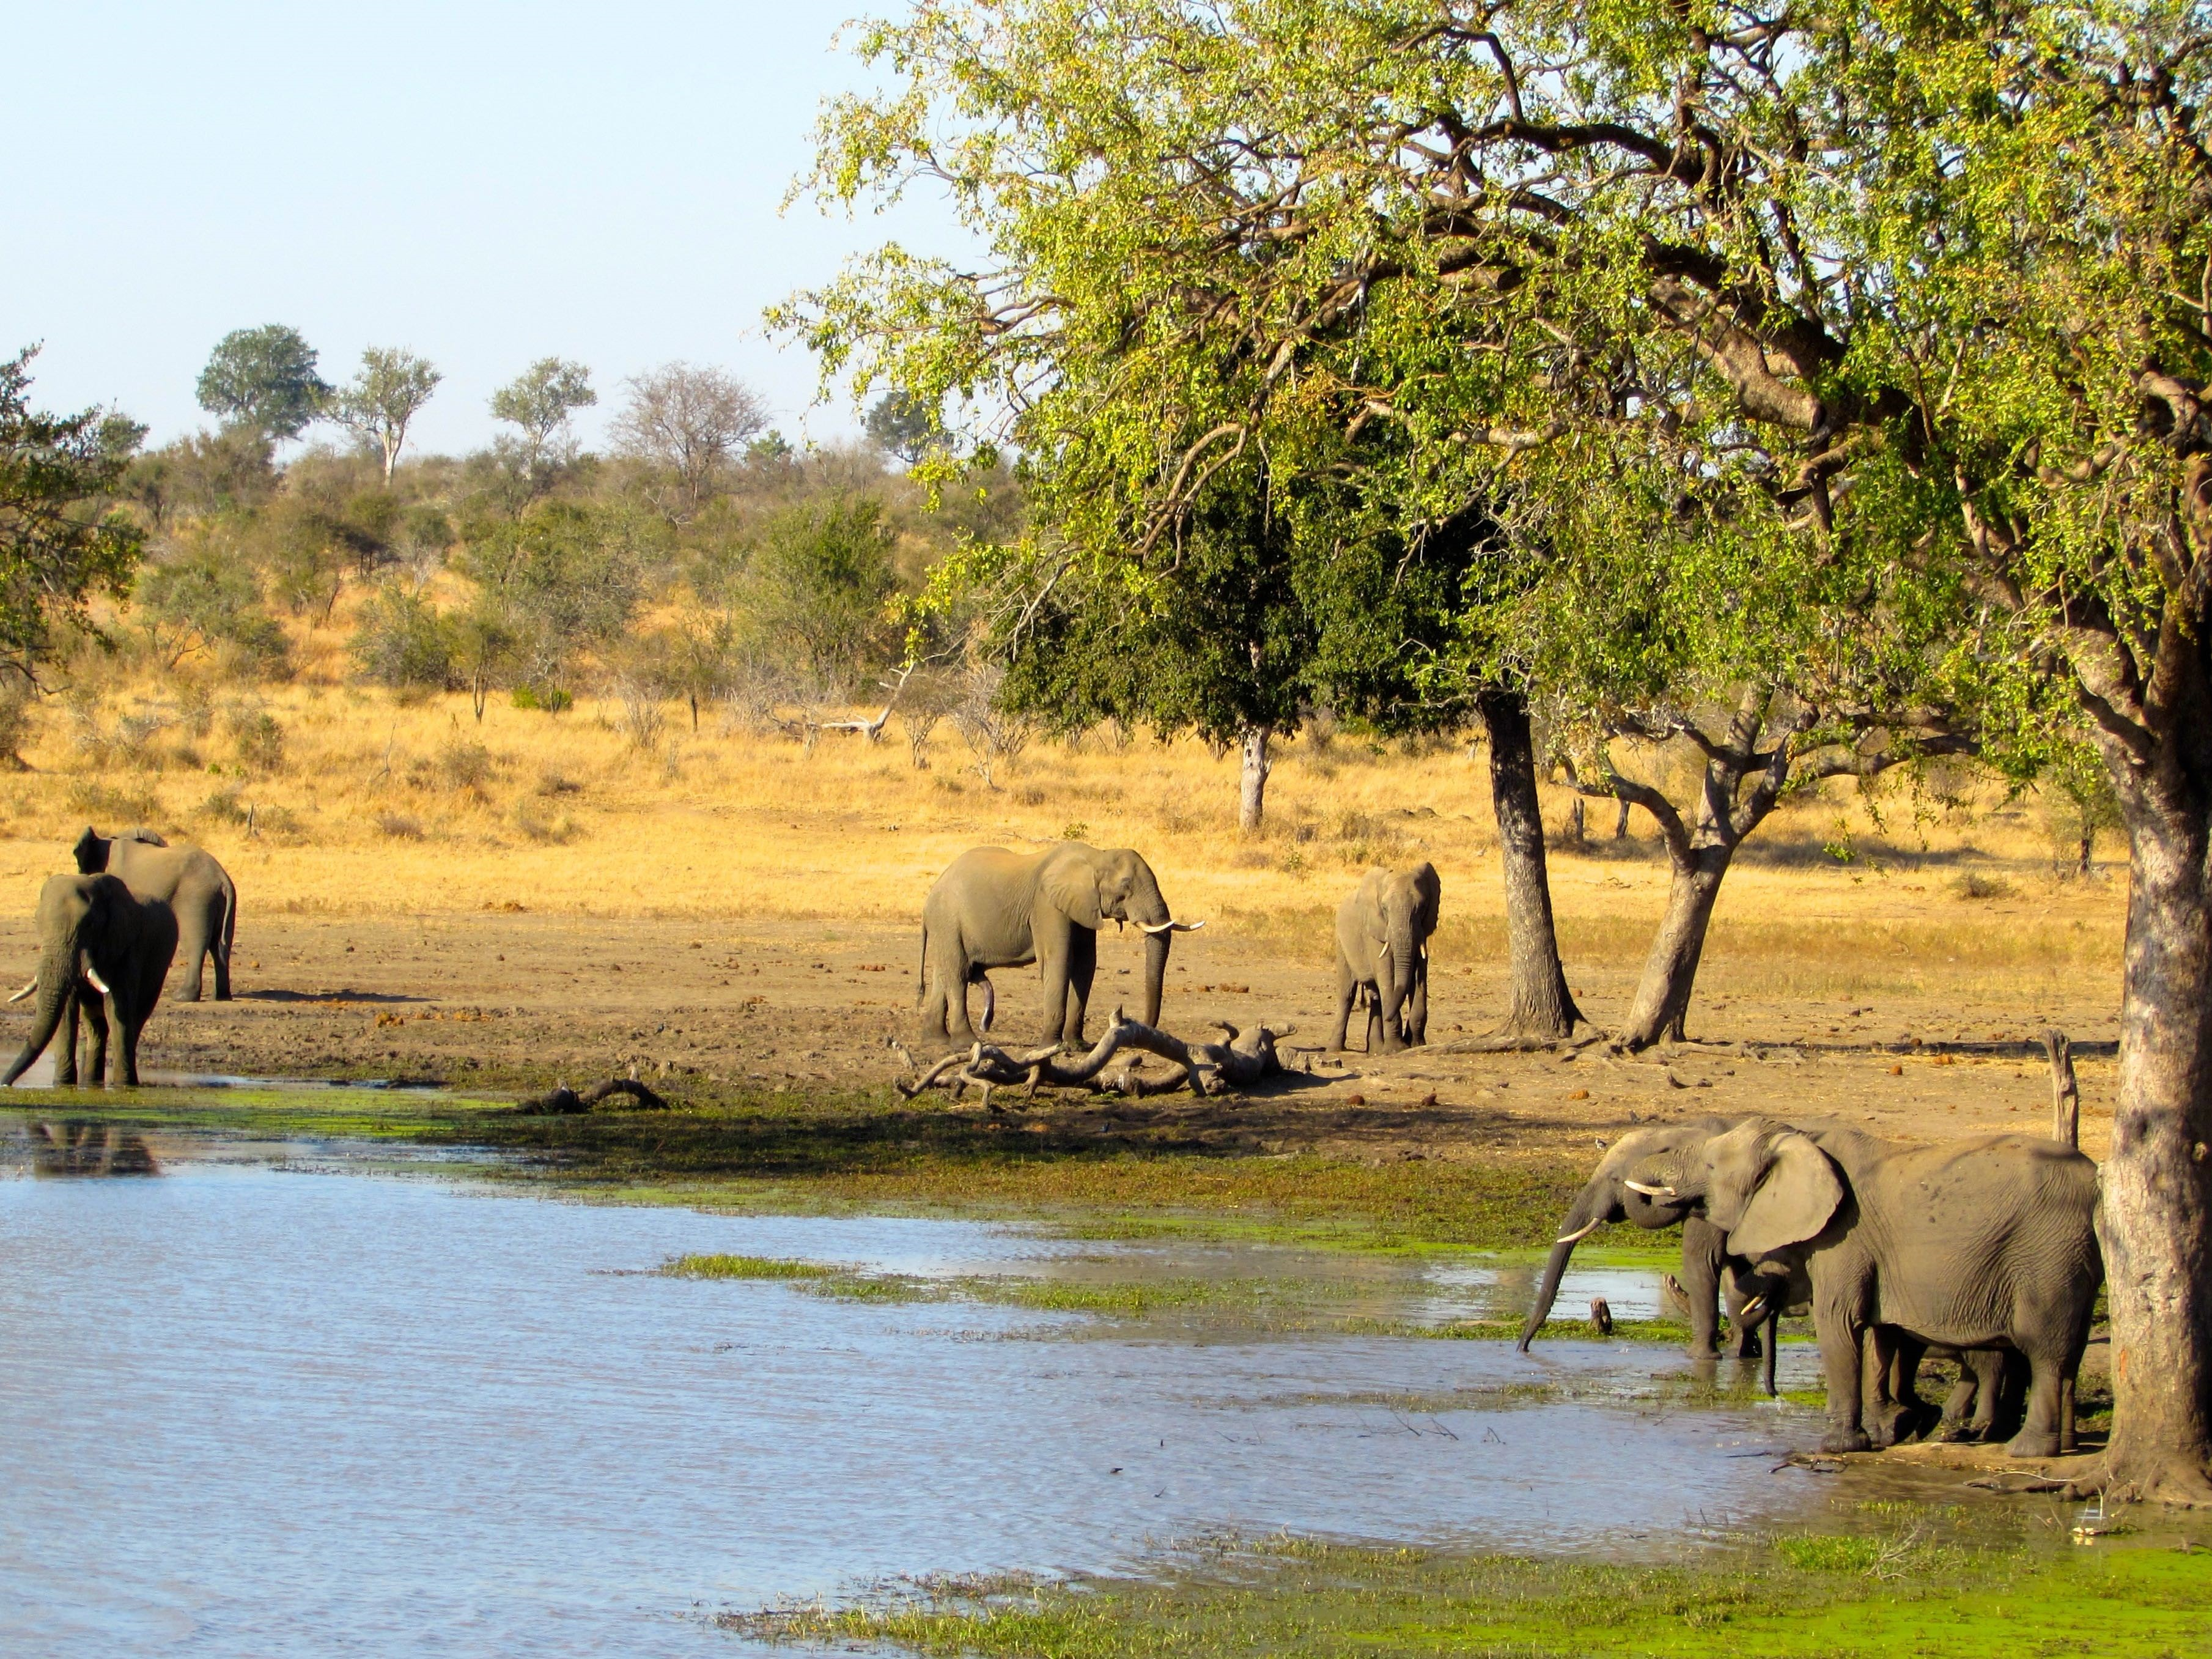 Elephants at a savanna watering hole in Africa.